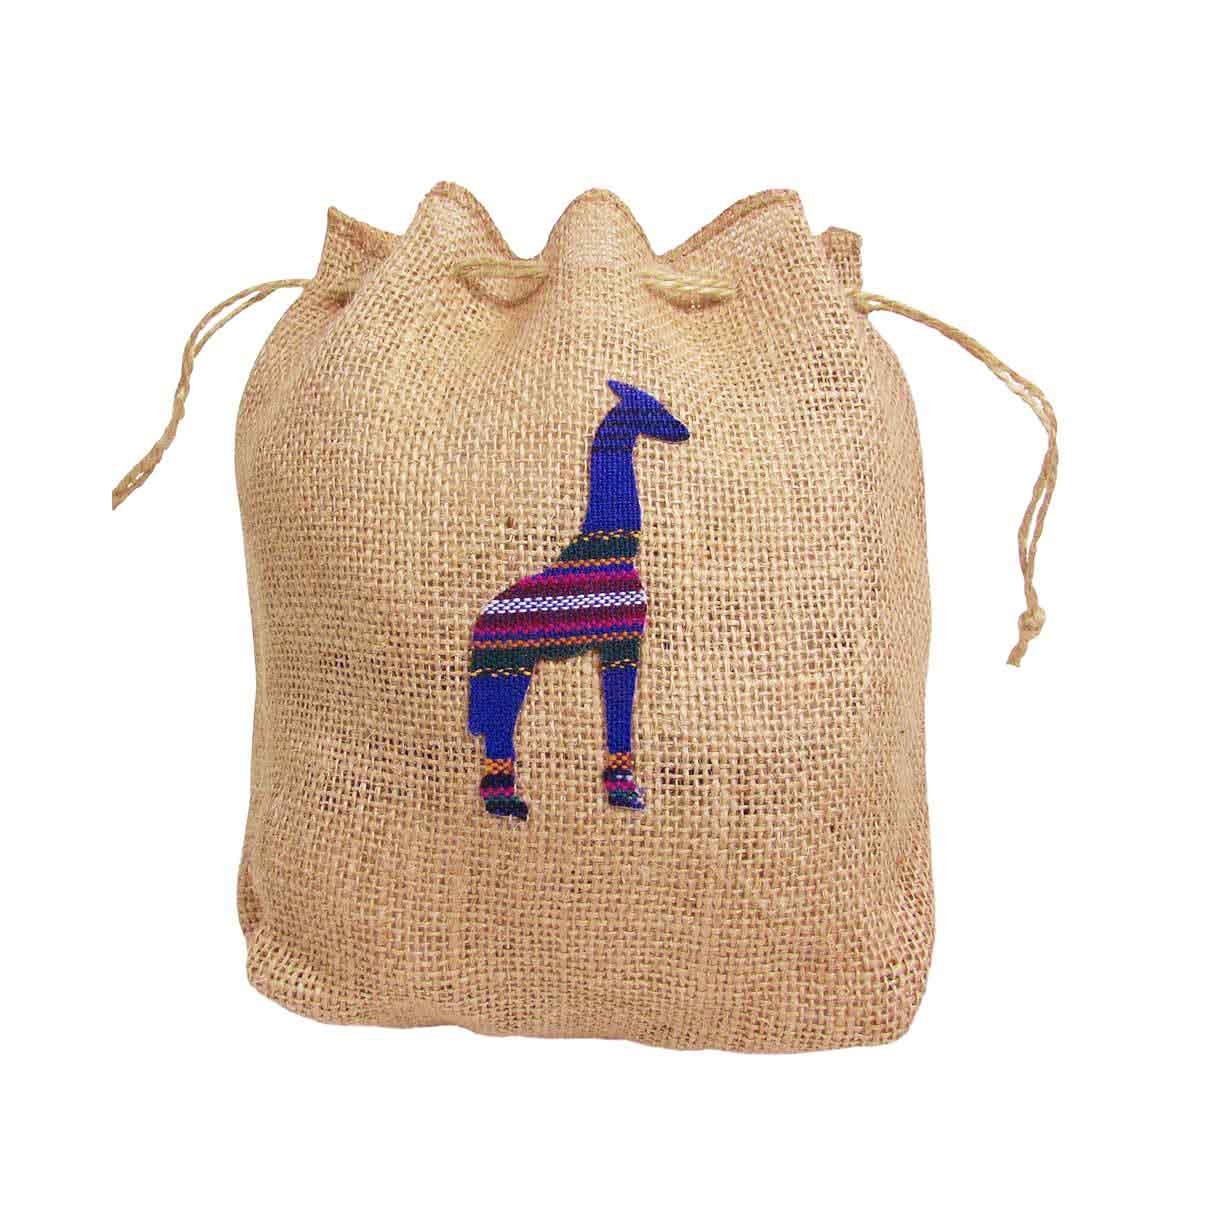 Giraffe Hemp Drawstring Bag ?id=14050955558965